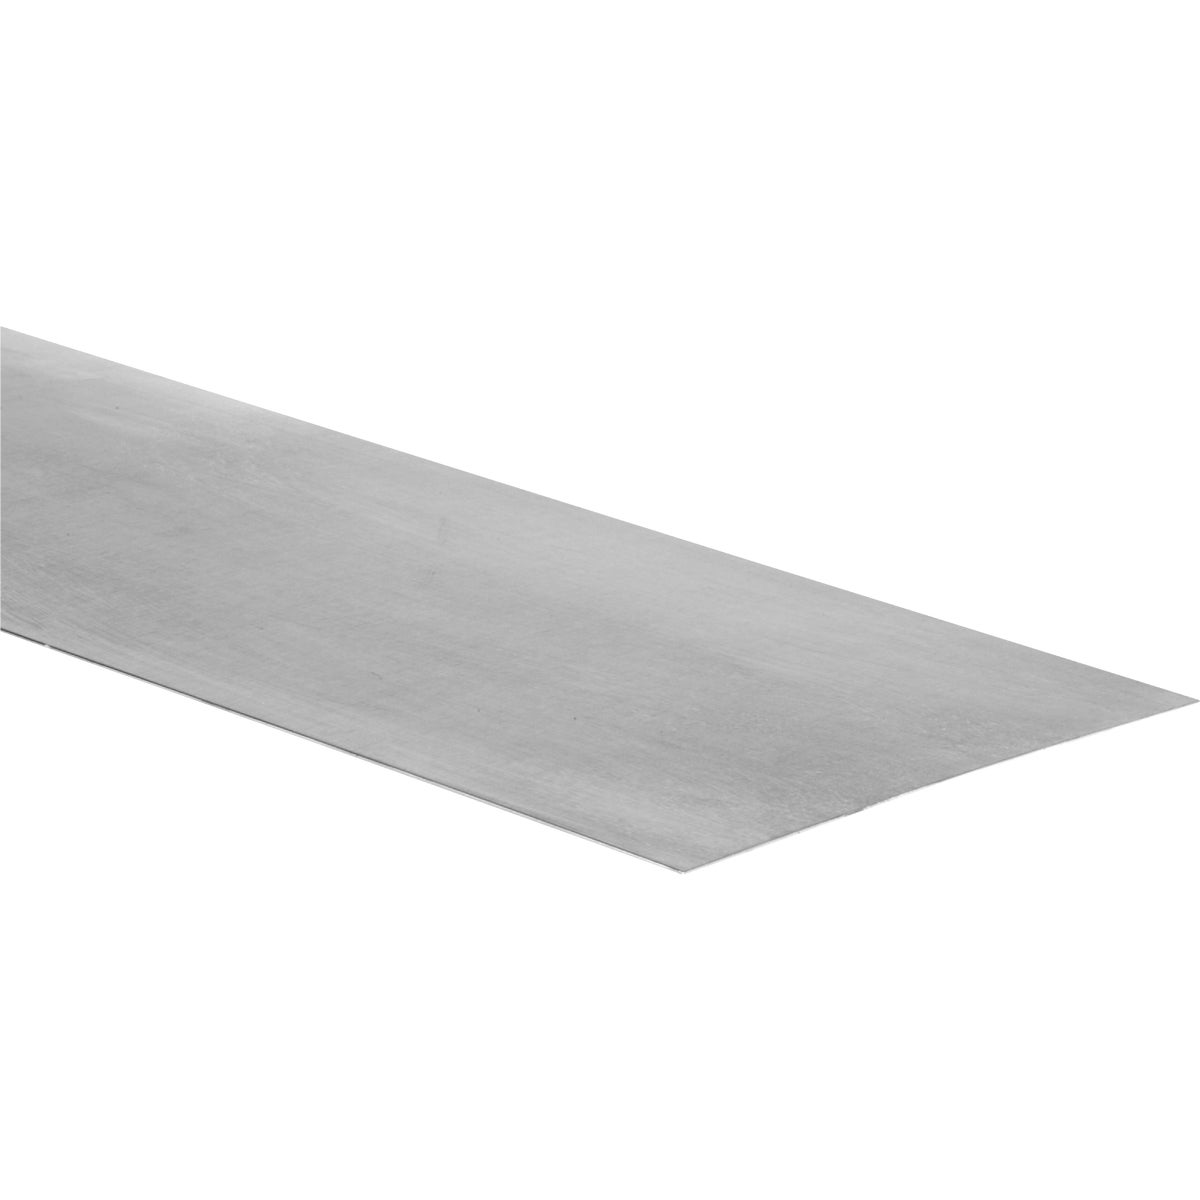 12X24 26GA STEEL SHEET - N316299 by National Mfg Co